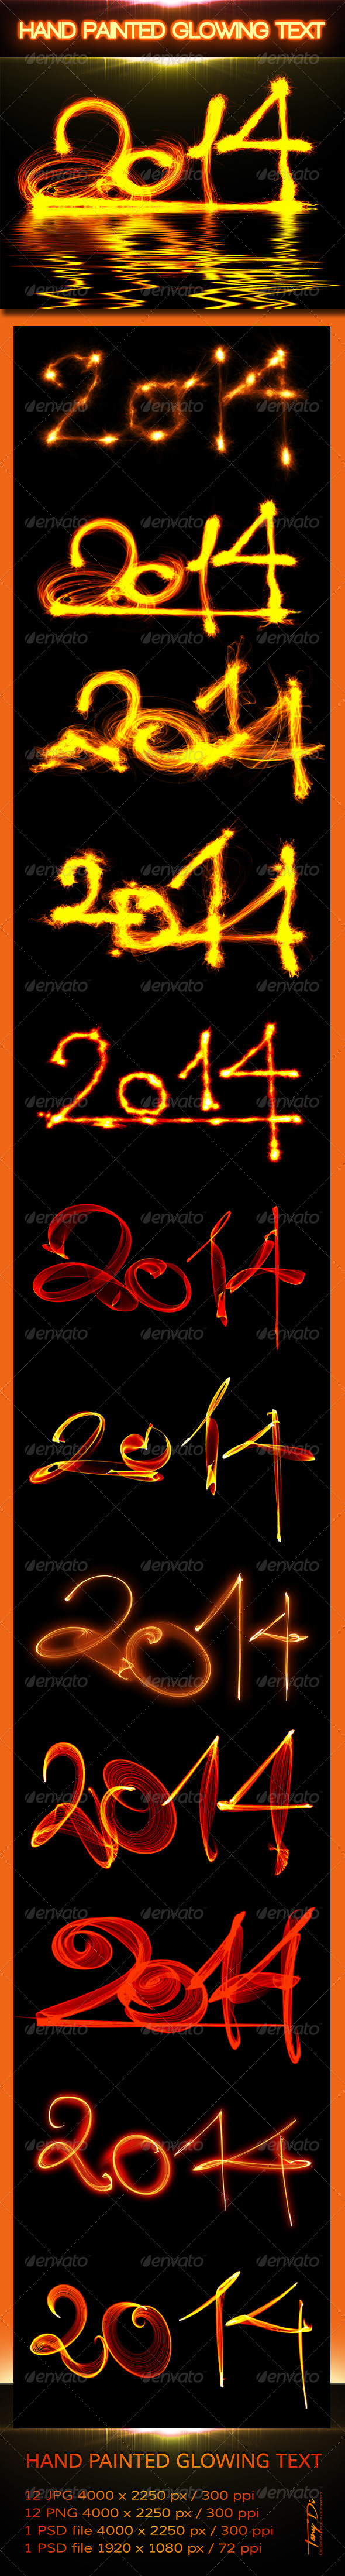 2014 Hand Painted Glowing Text - Miscellaneous Backgrounds